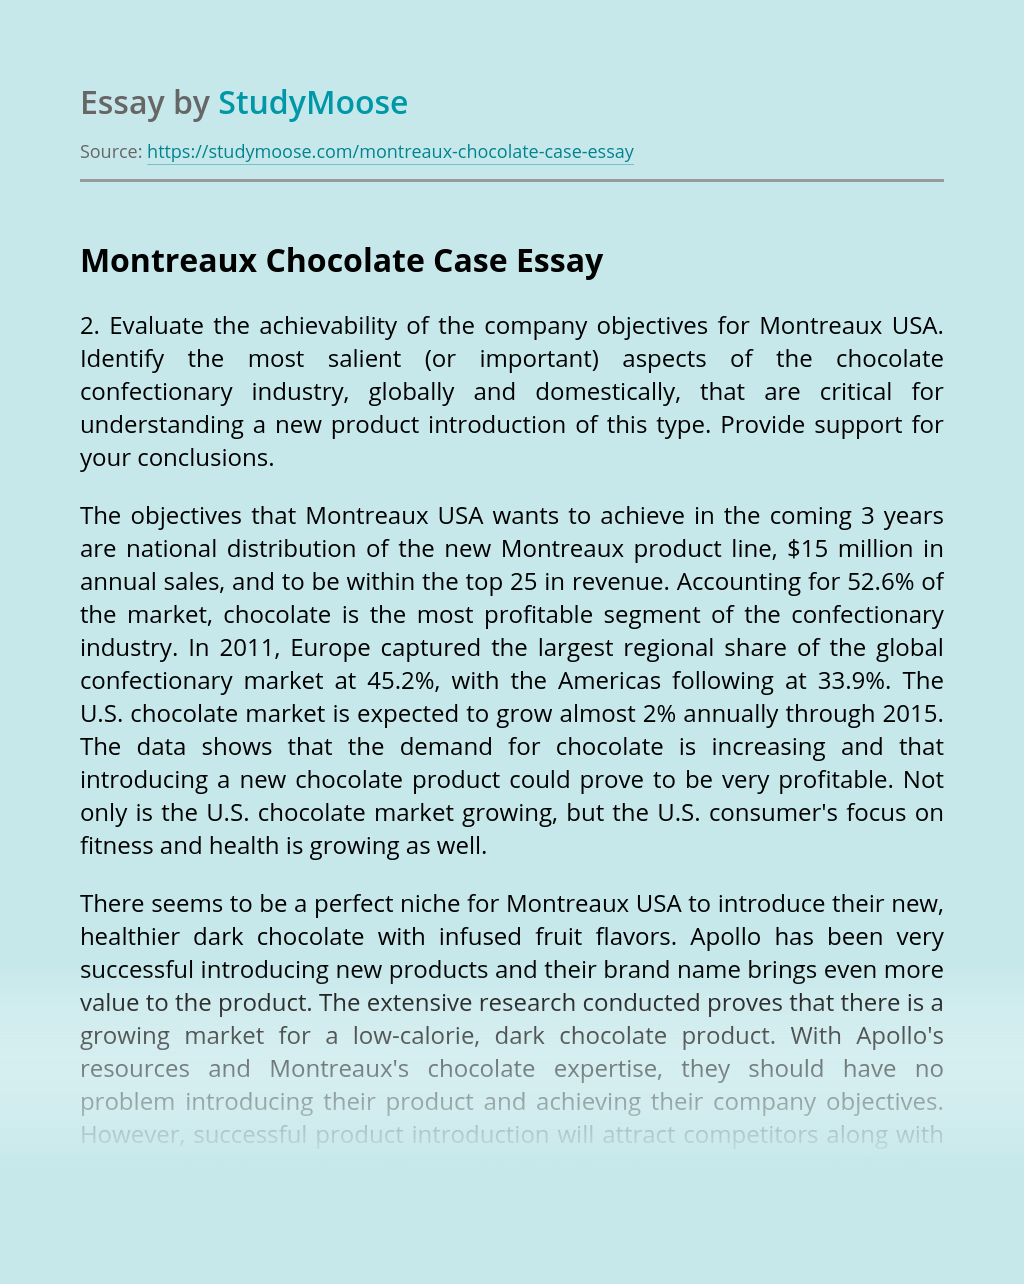 Montreaux Chocolate Case